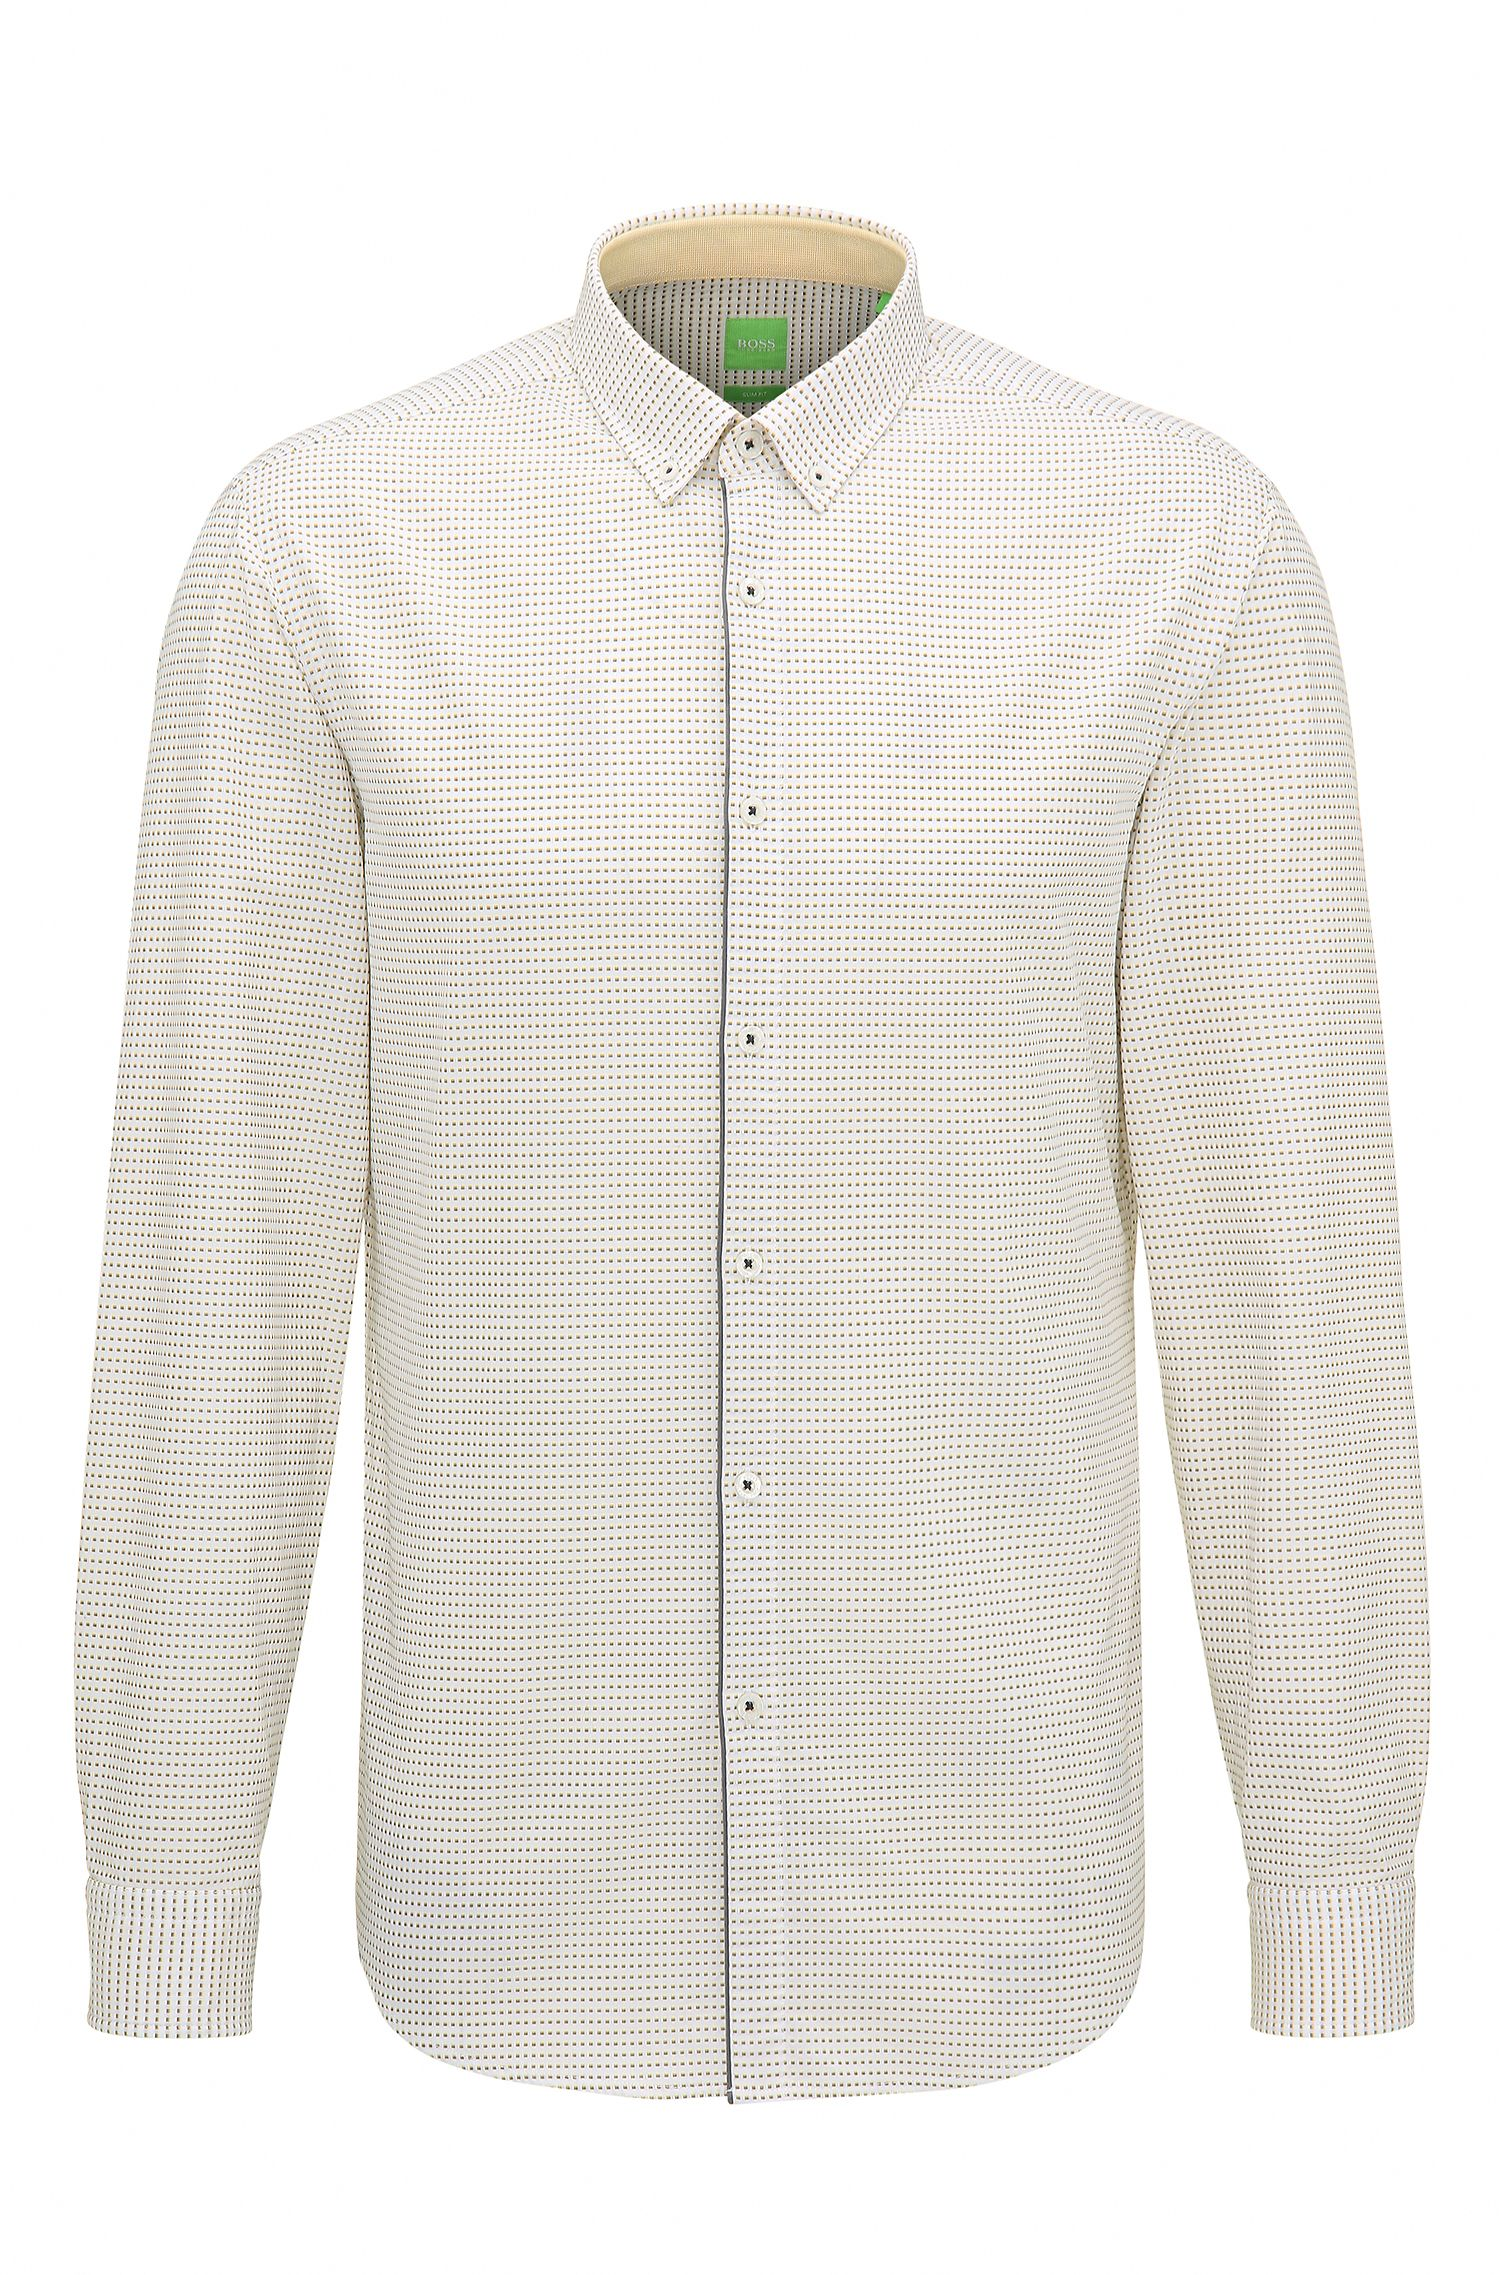 Micro-Square Dot Cotton Button-Down Shirt, Slim Fit | C-Baltero